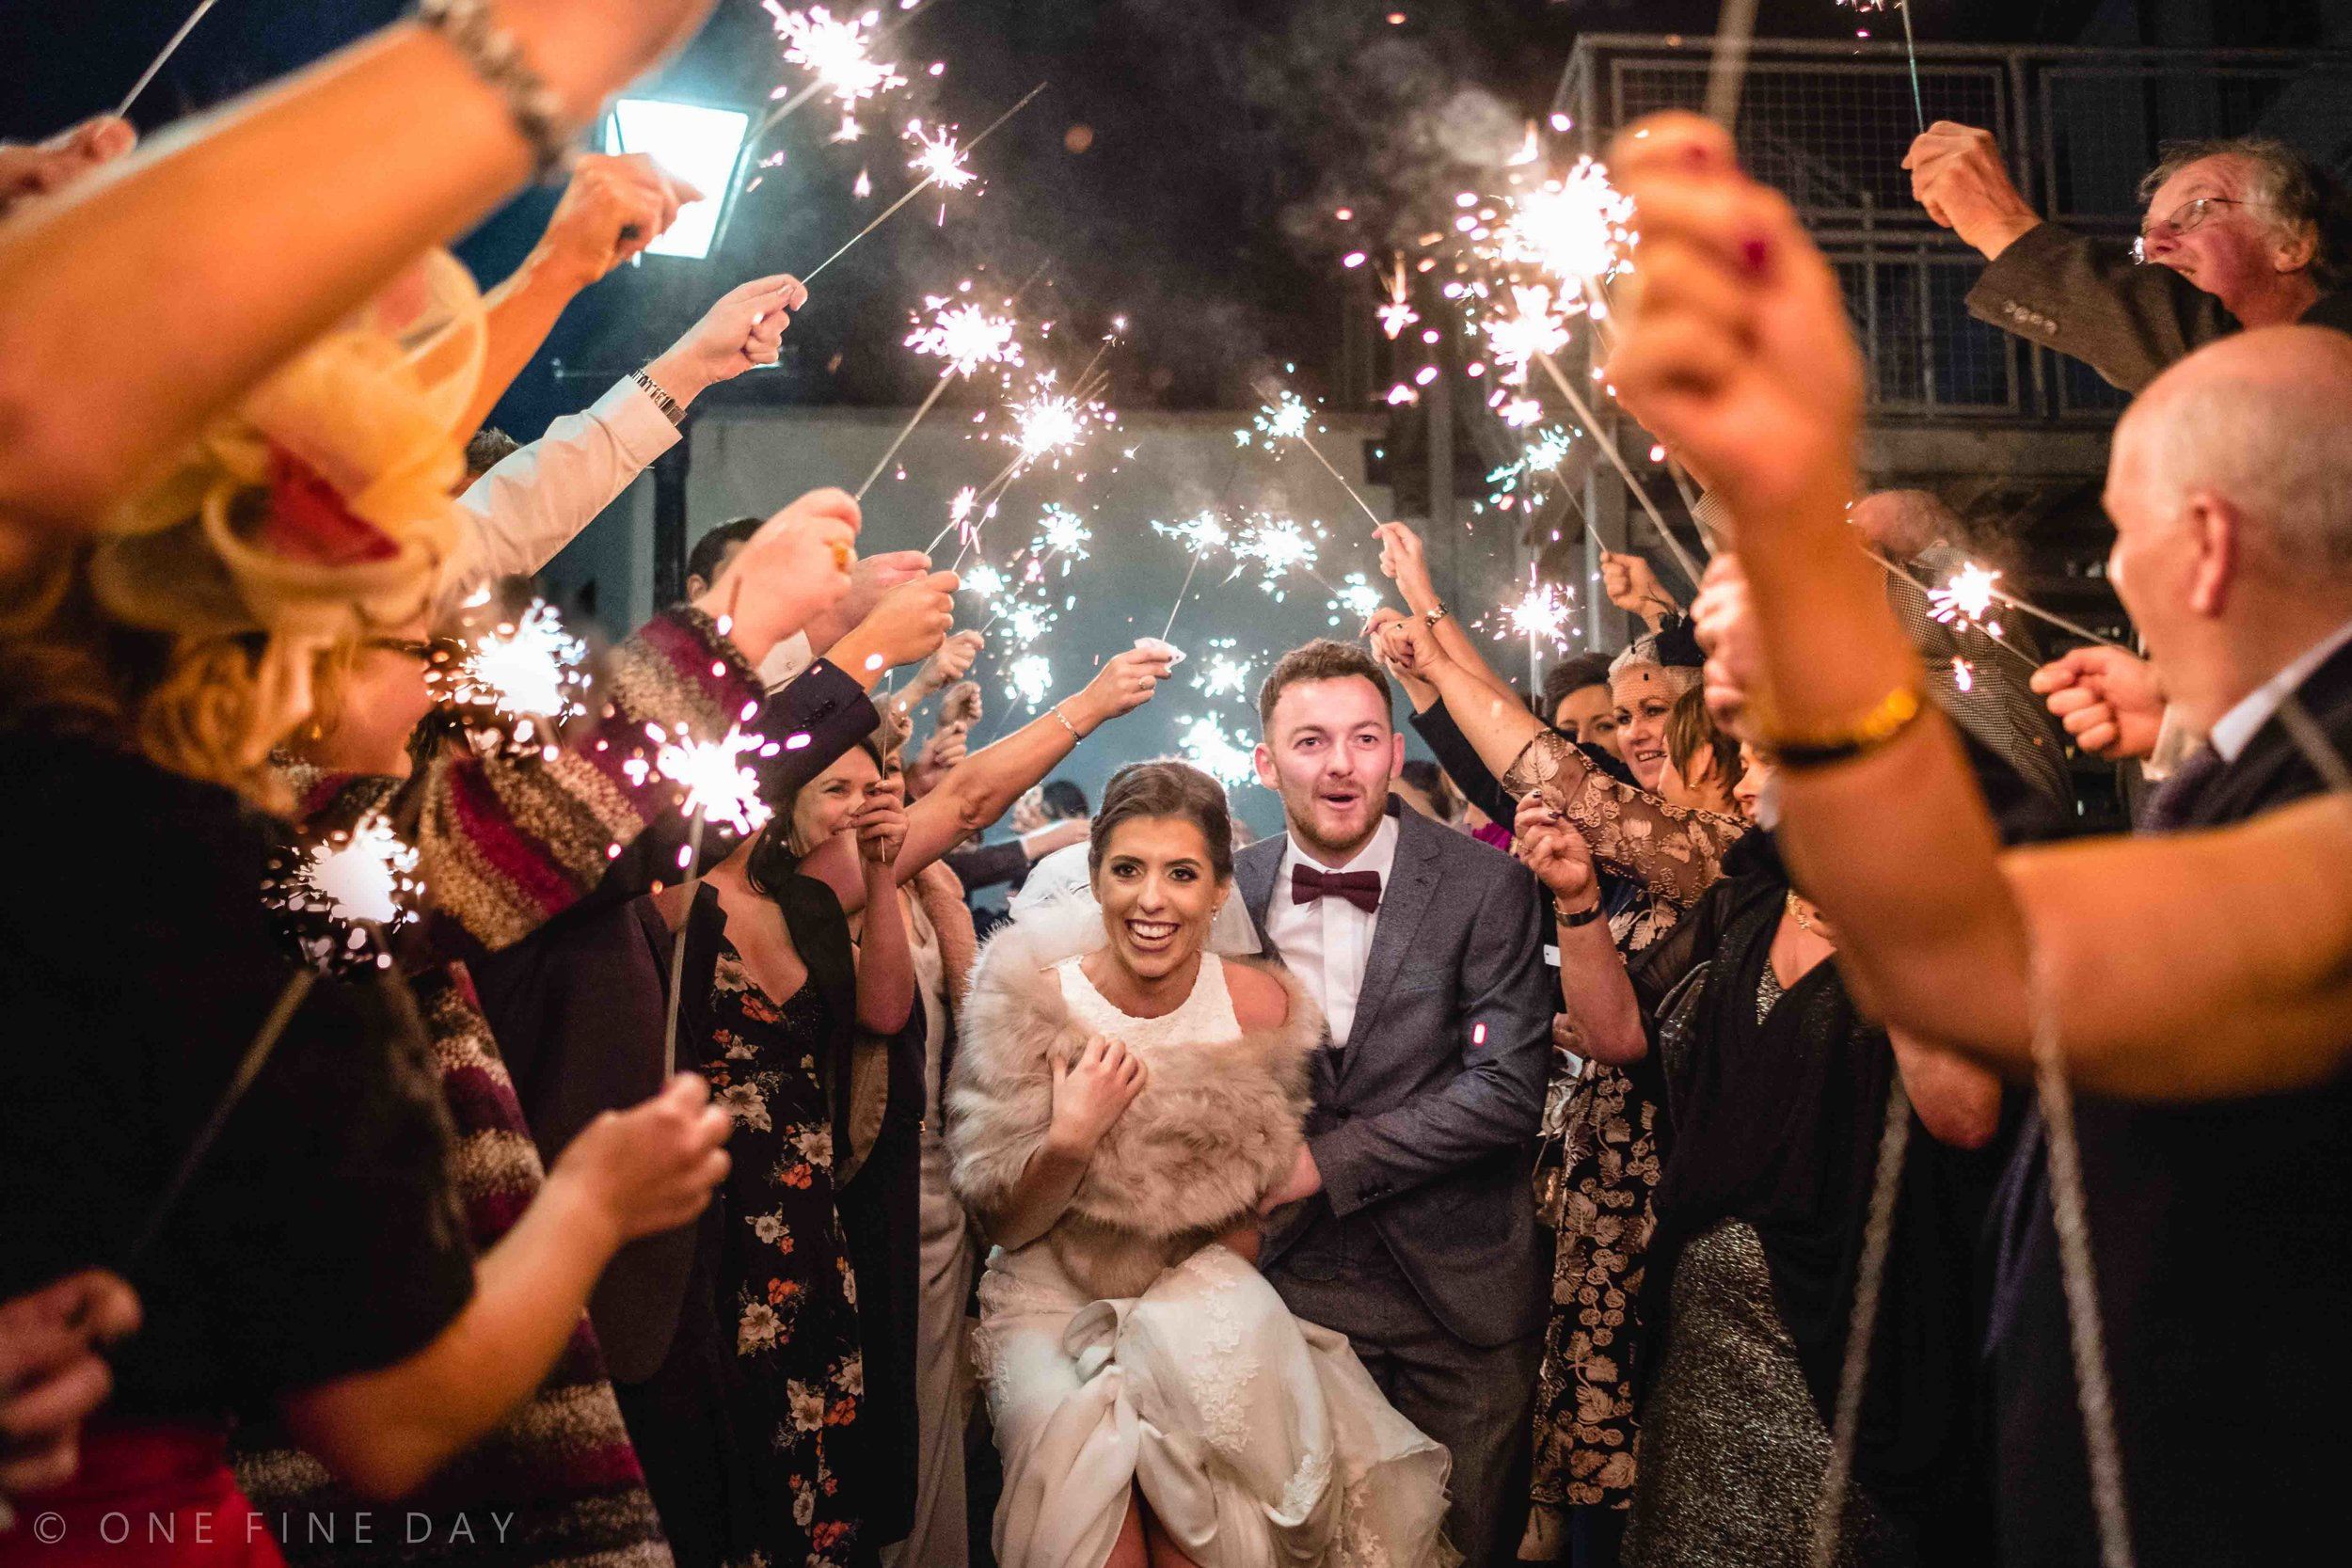 Wedding Image of Sparklers at Ballygally castle Northern Ireland